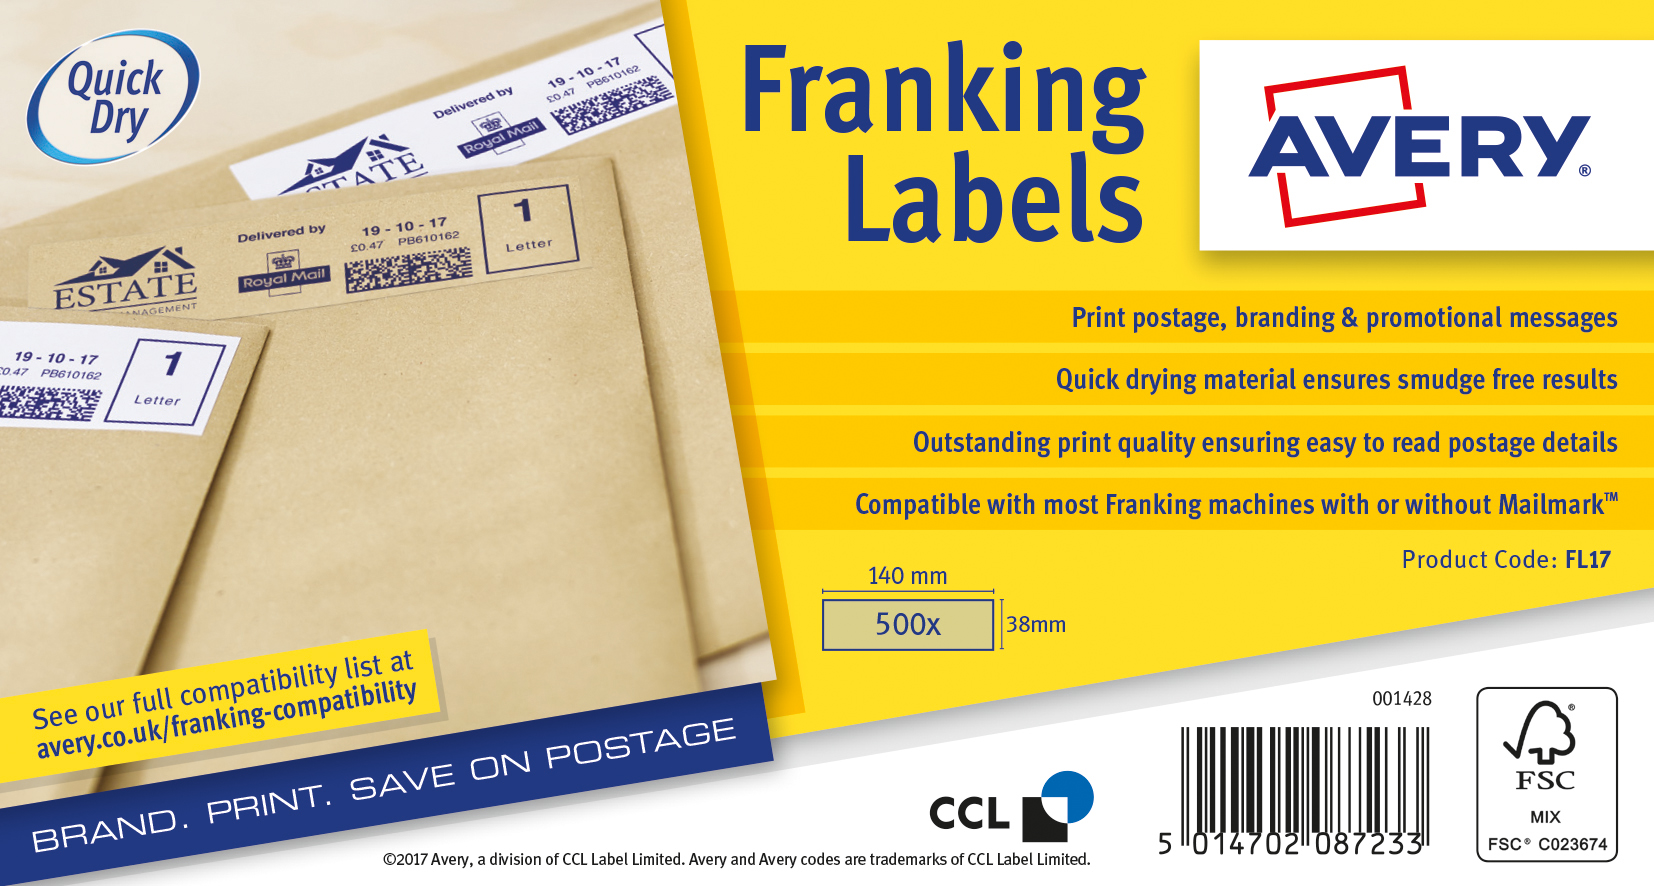 Avery Franking Labels 140x38mm BN PK500